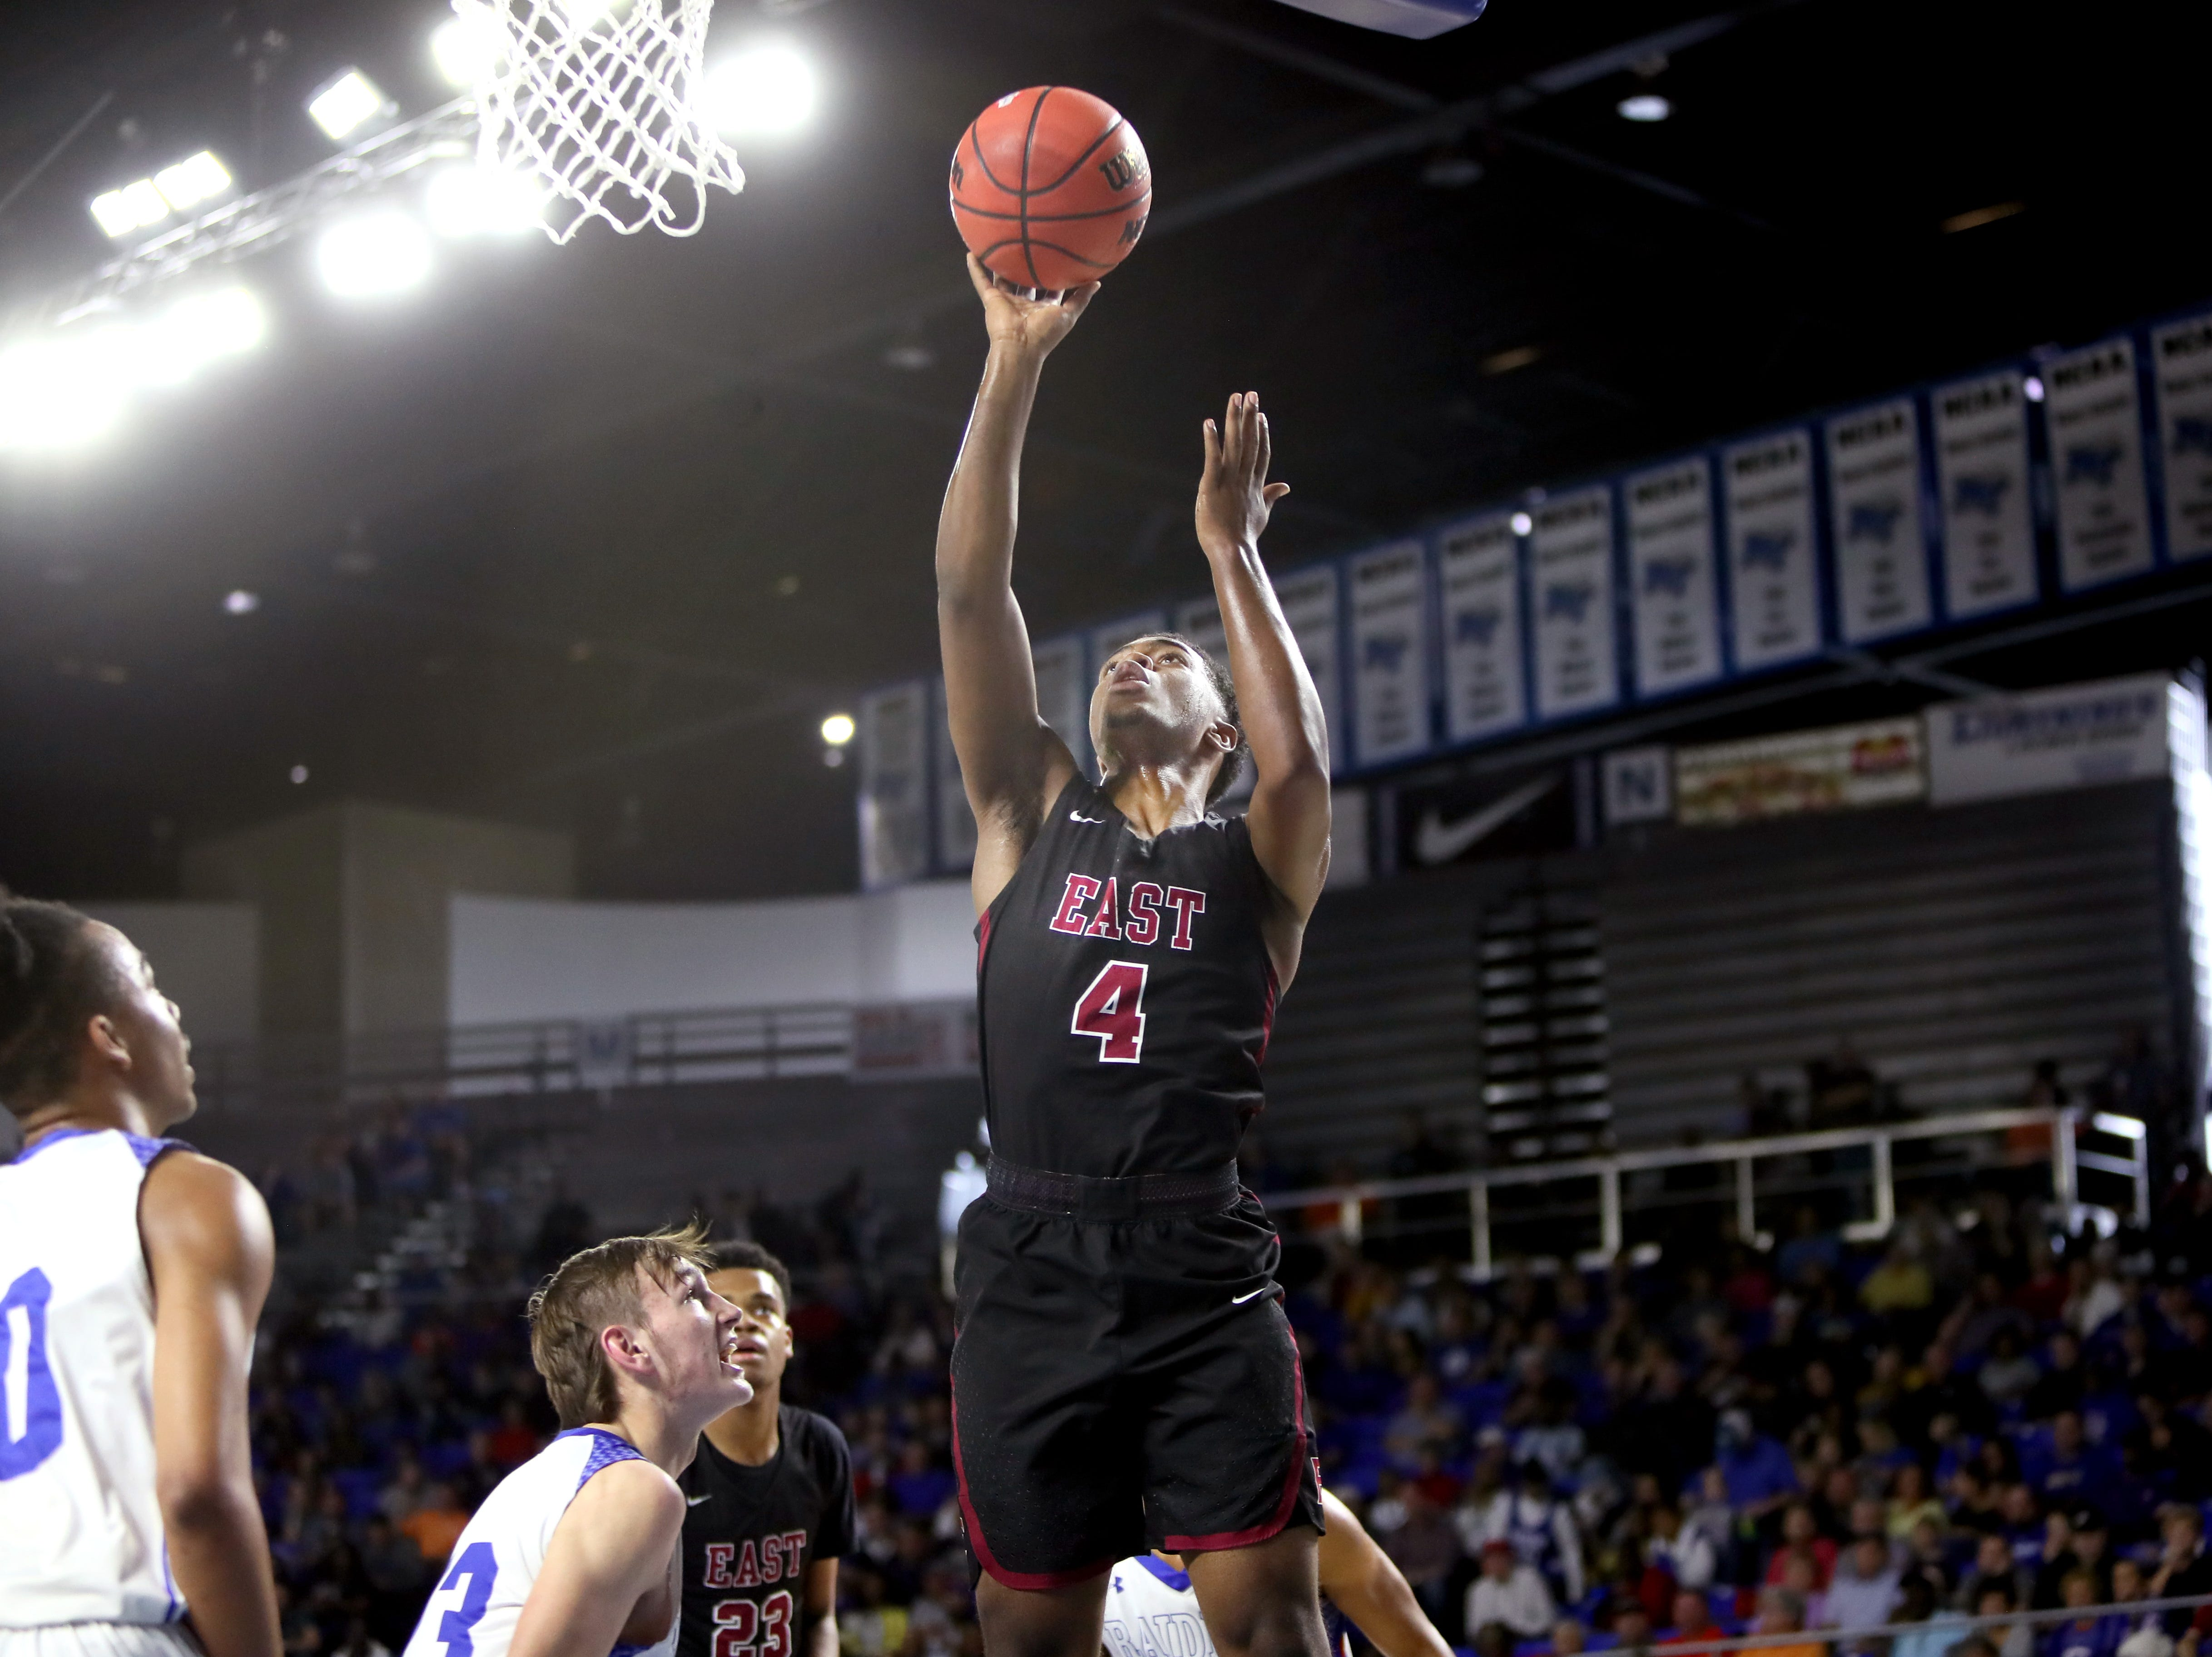 Memphis East's Isaiah Cathey shoots the ball against Cleveland during the TSSAA Division I basketball state tournament at the Murphy Center in Murfreesboro, Tenn. on Thursday, March 14, 2019.